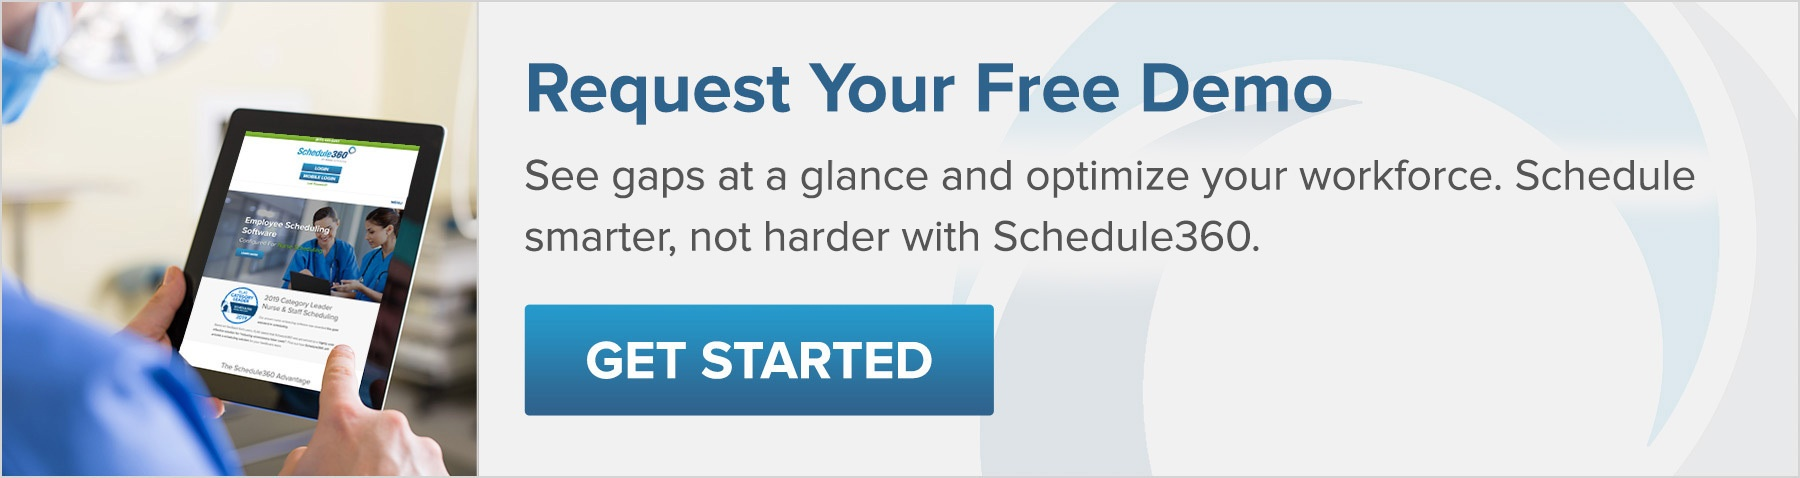 Request a demo with Schedule360 today!